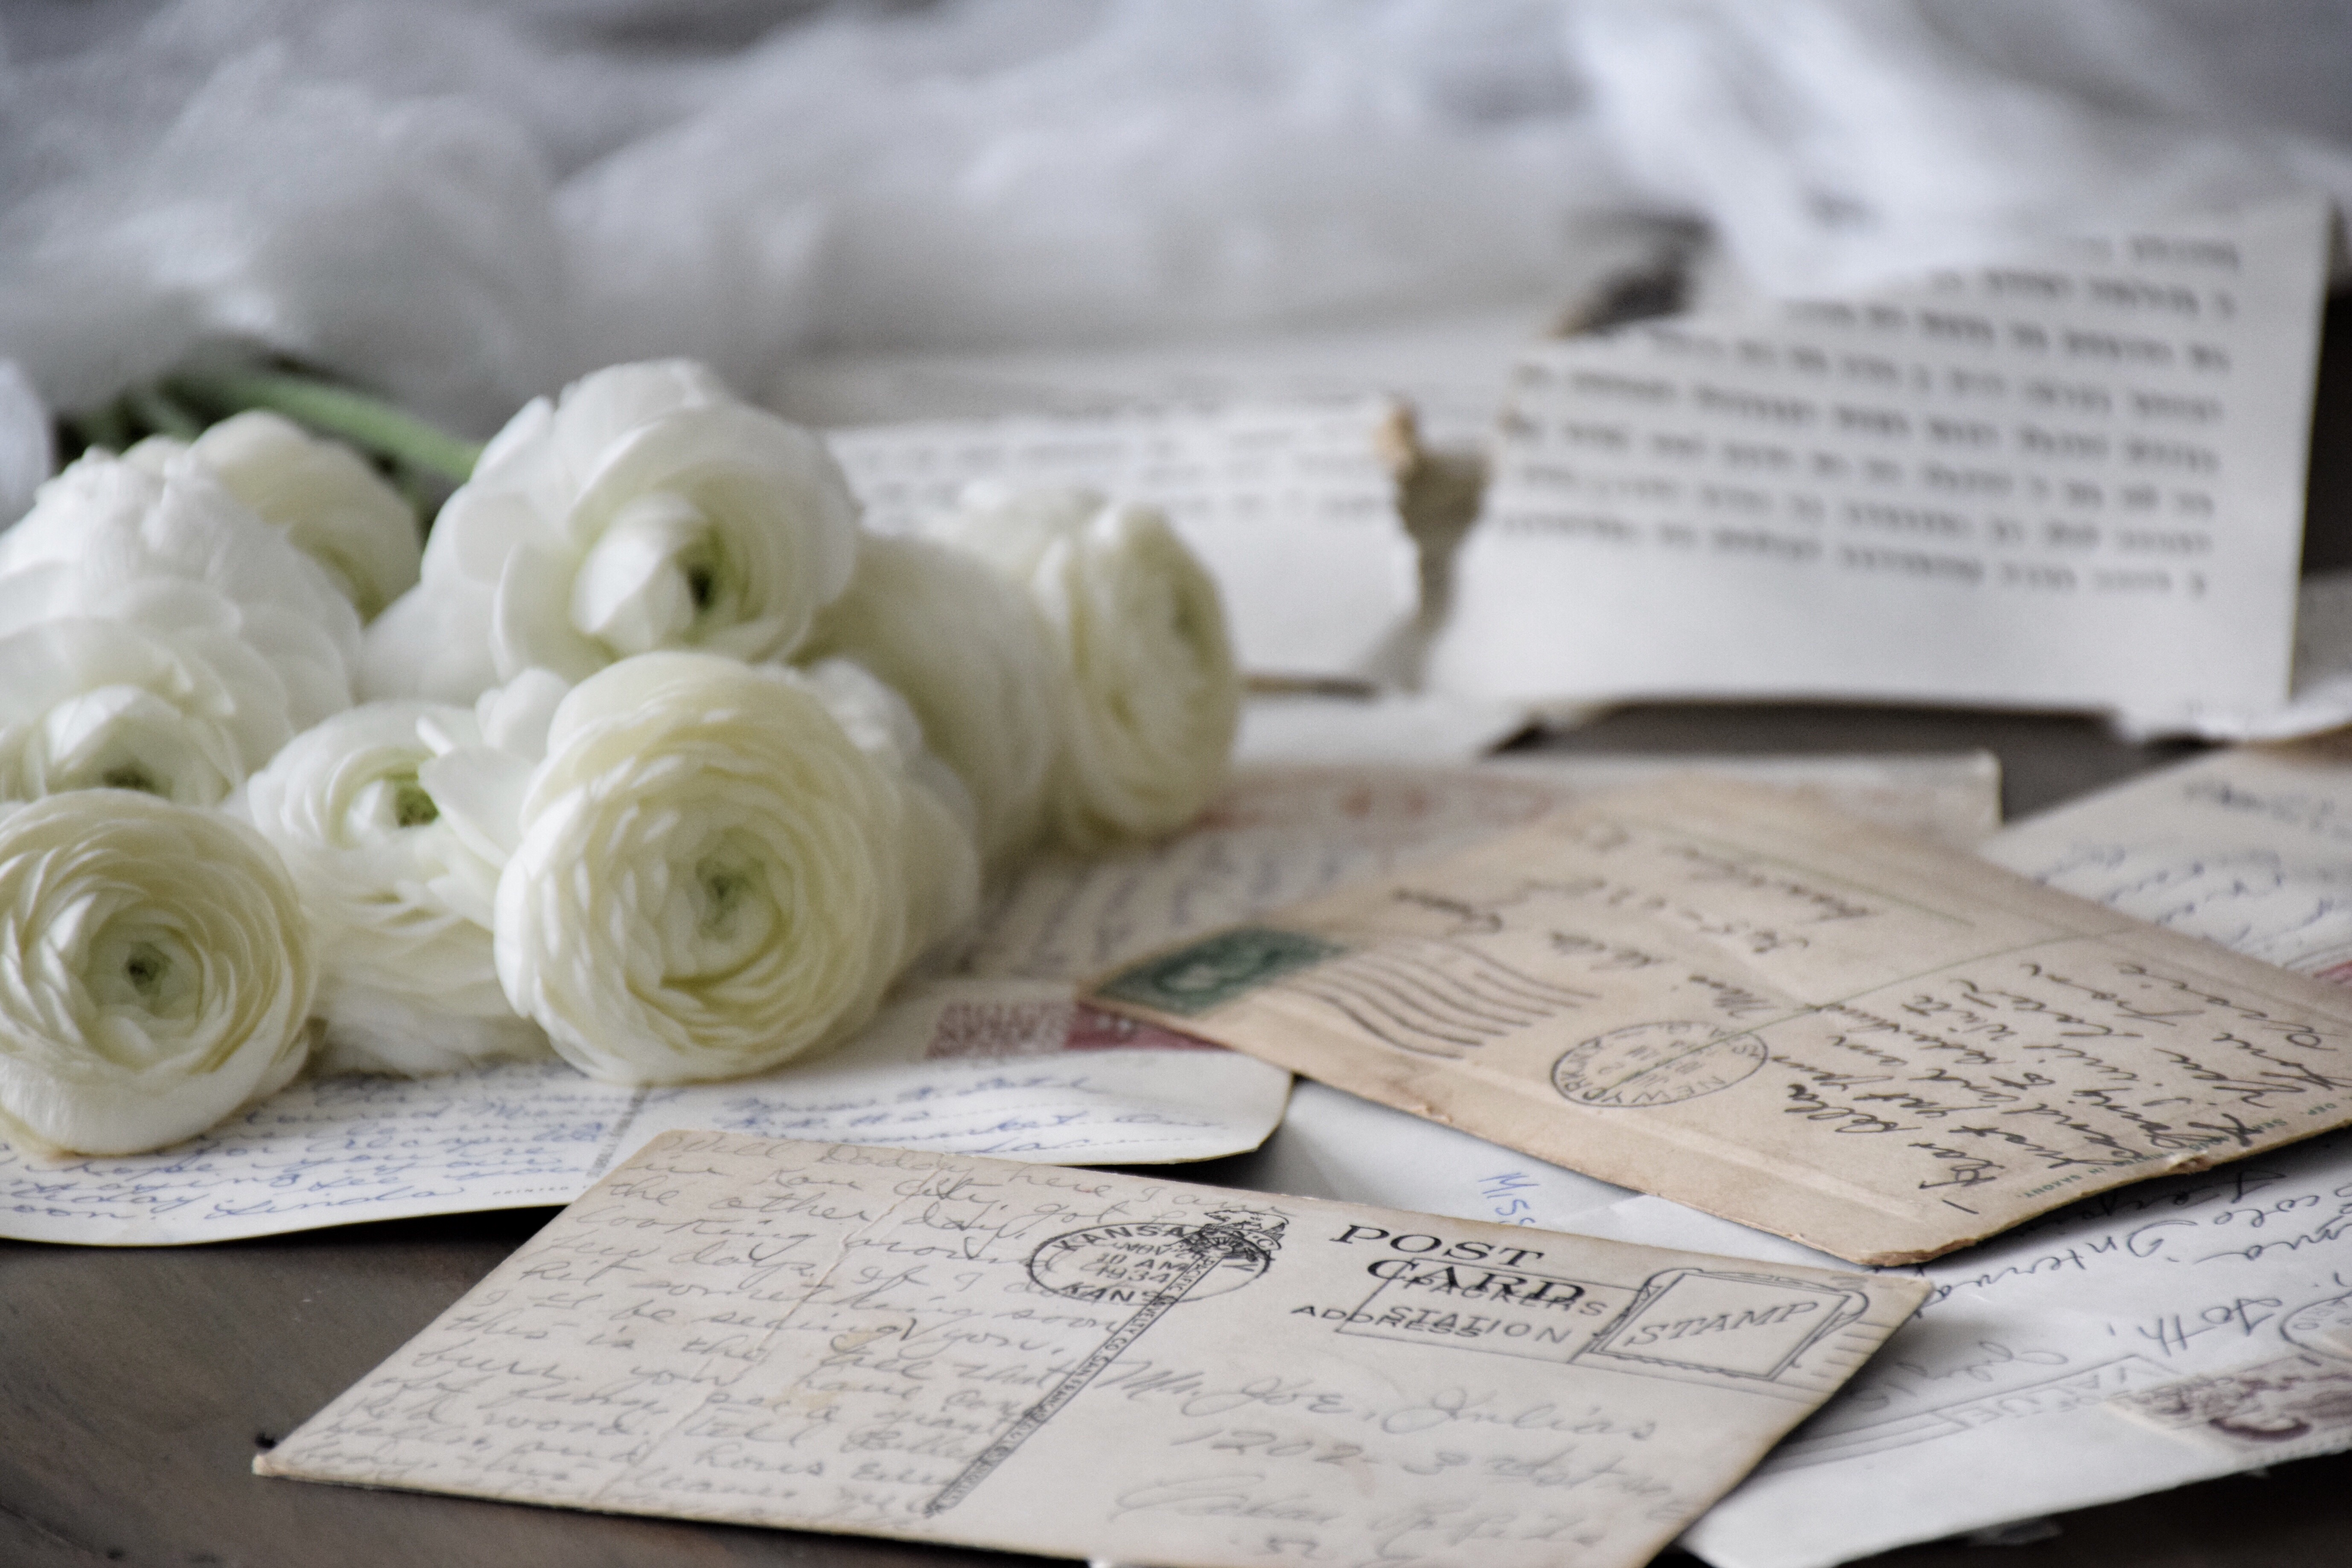 Postcards and flowers